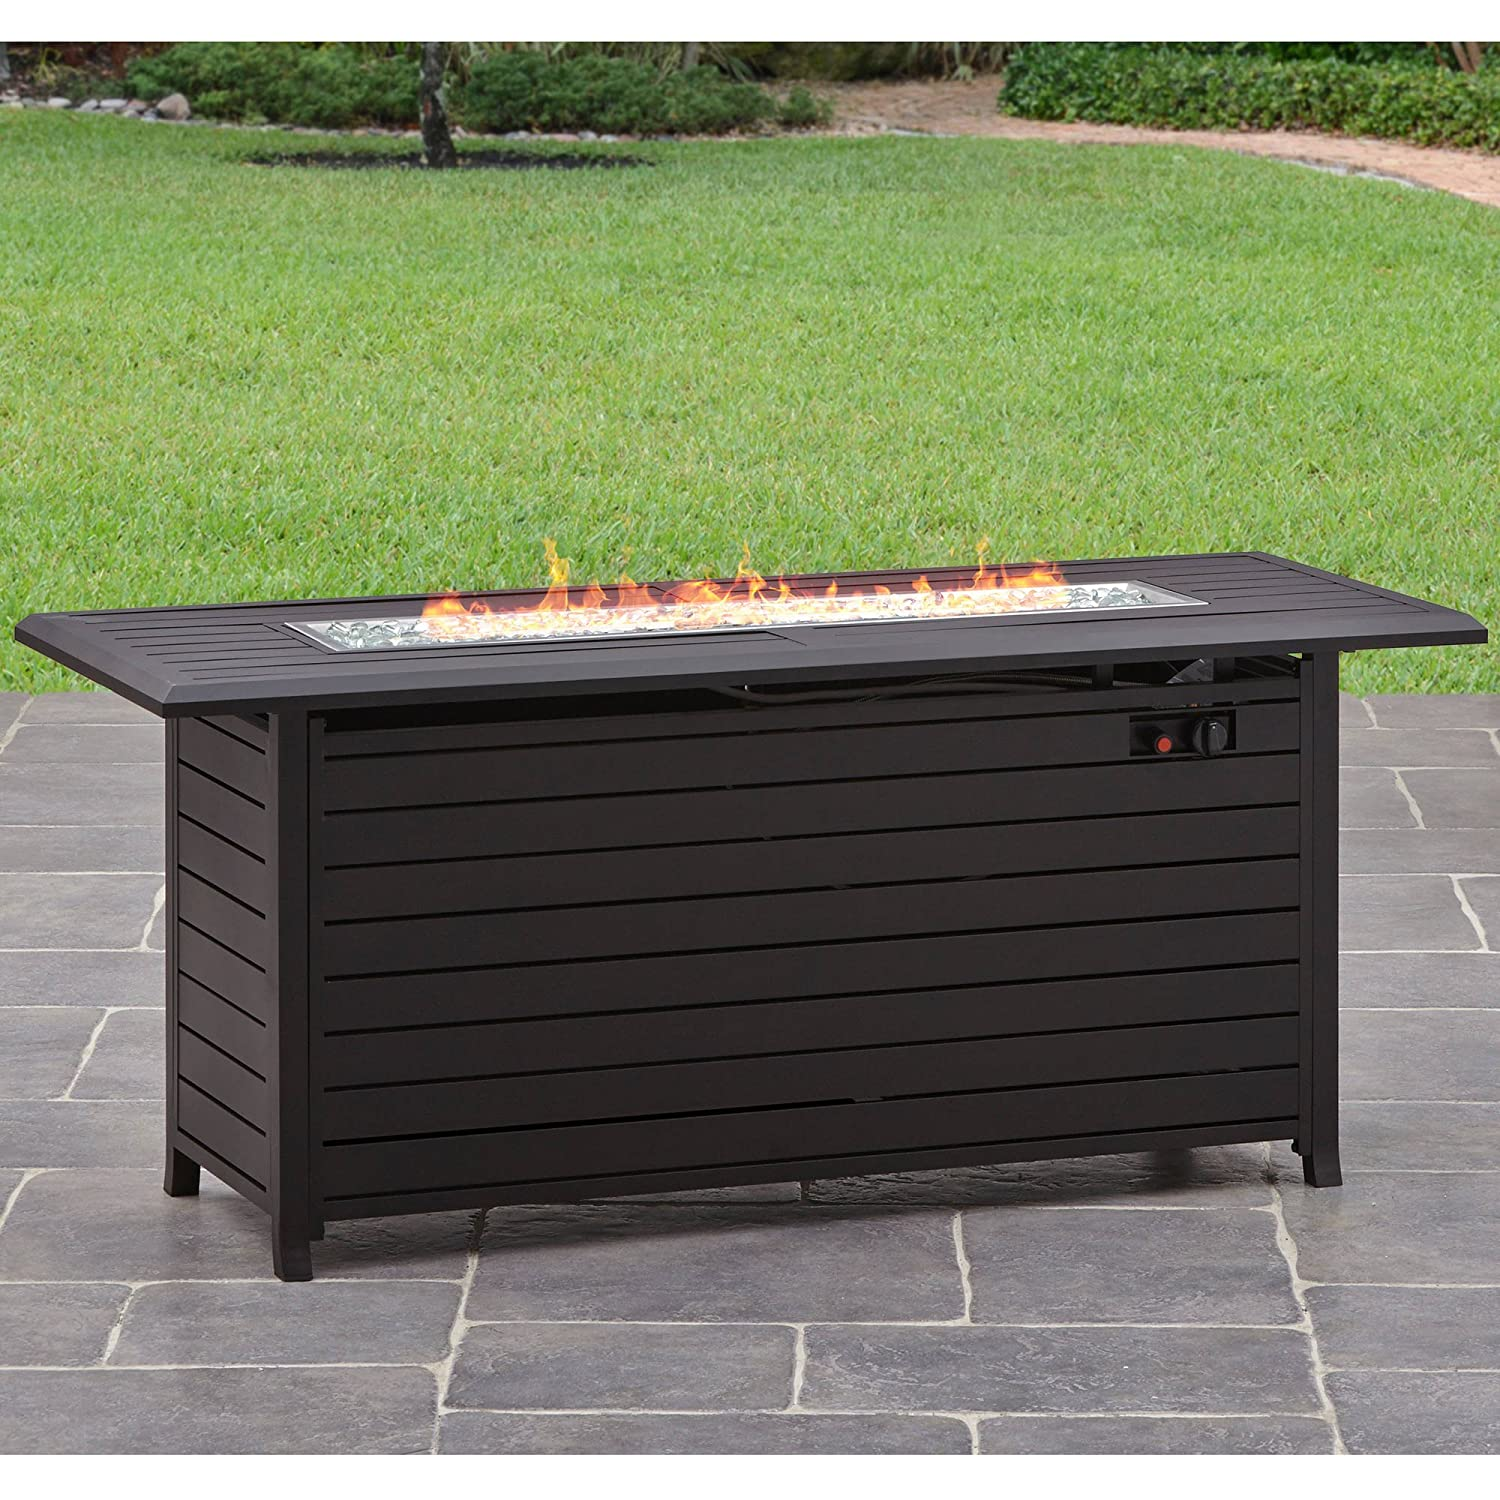 Amazon com better homes and gardens carter hills durable and rust resistant design 57 rectangular gas fire pit with stainless steel burner garden